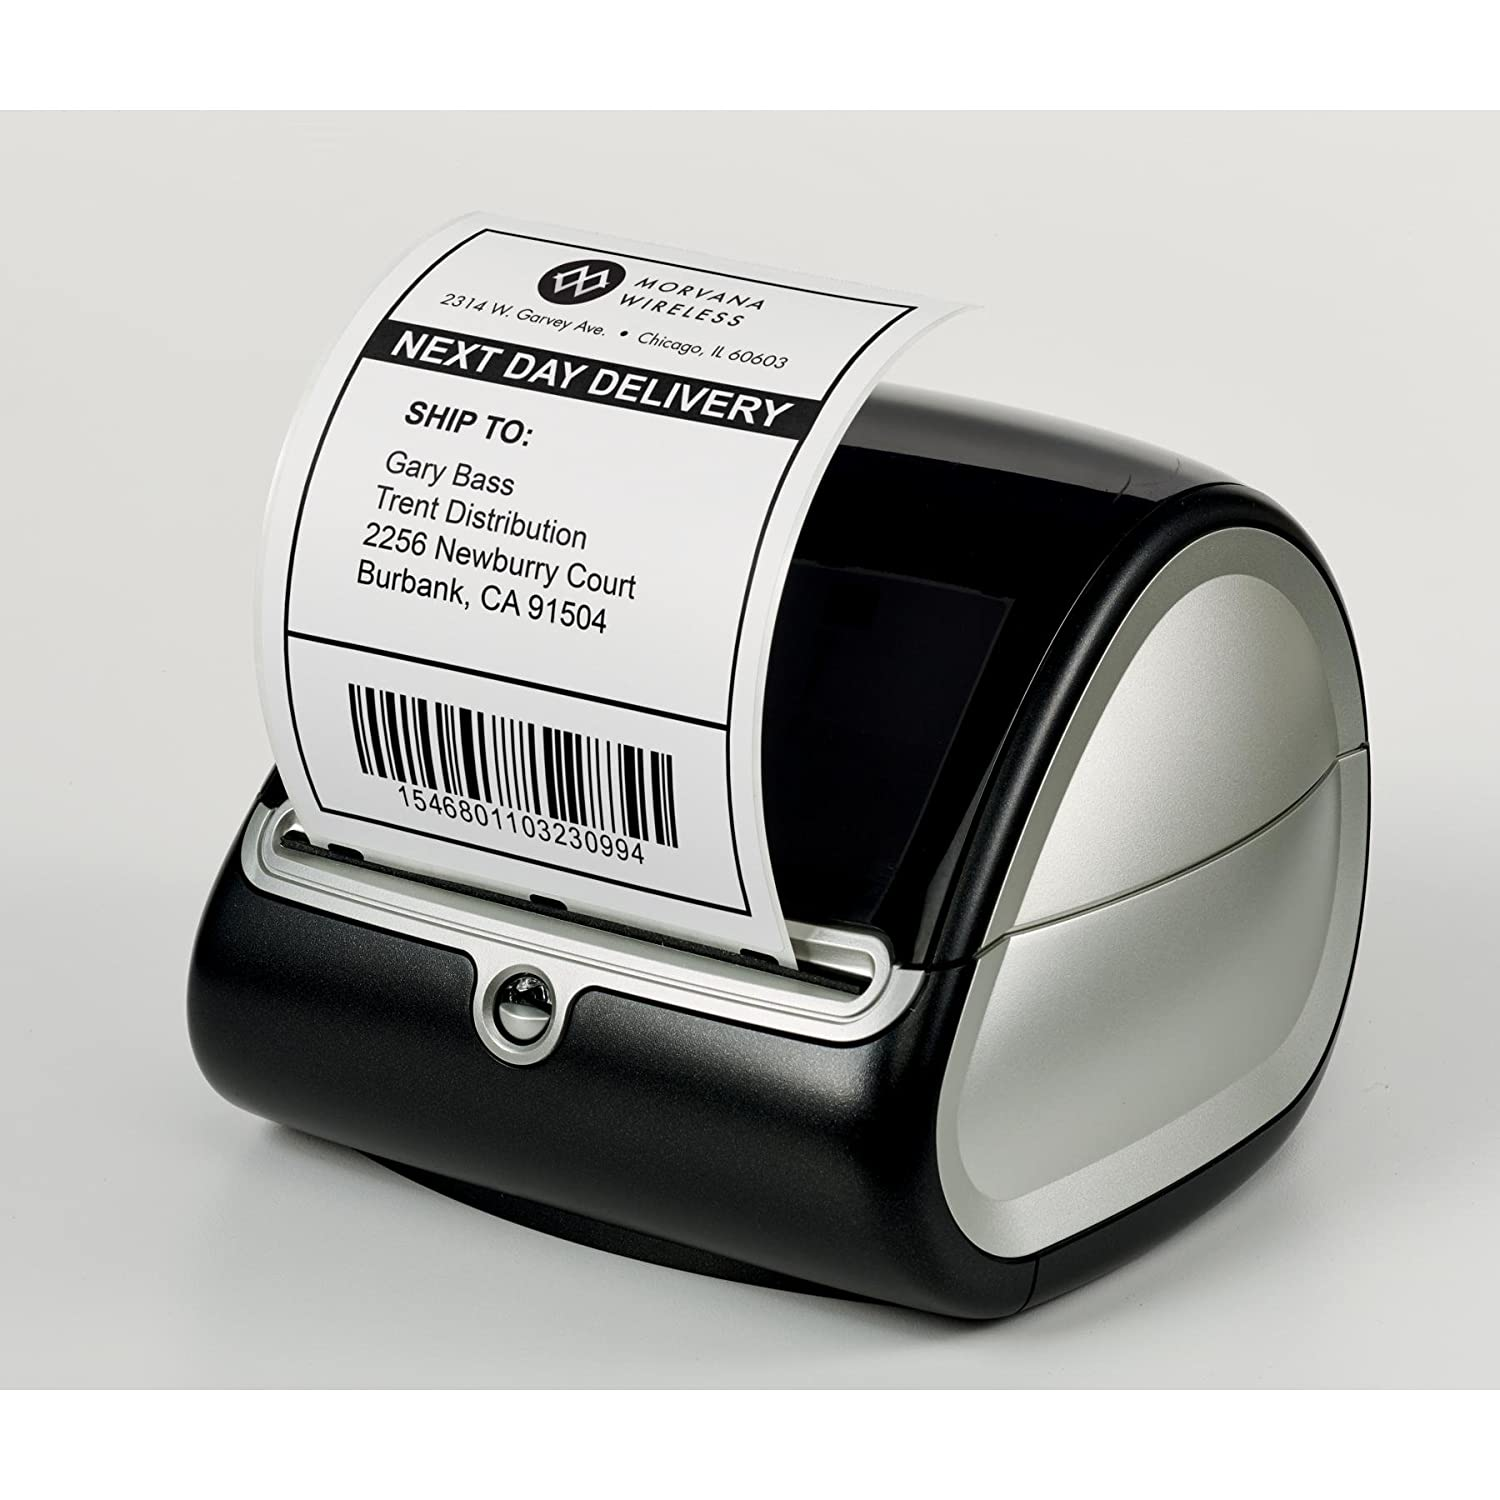 Amazon Avery Shipping Labels for Dymo and Zebra Printers 4 – Free Shipping Label Maker